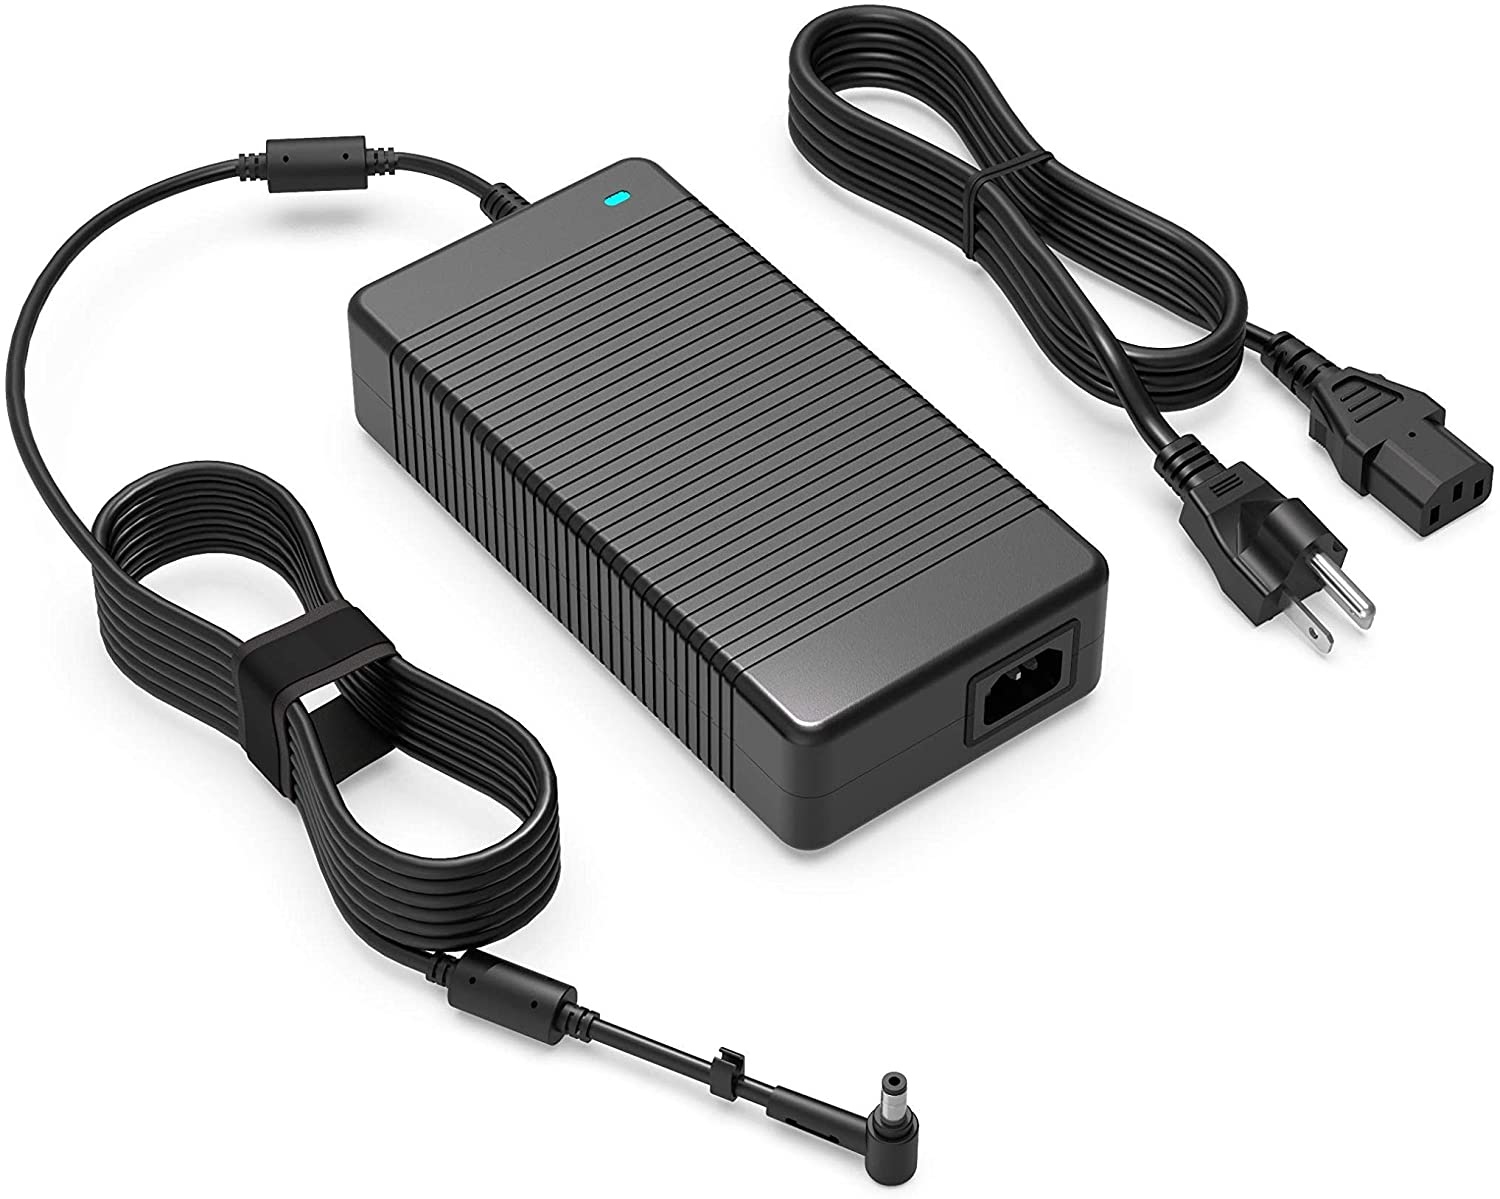 230W 180W AC Charger Fit for MSI GS65 GS66 GS75 GE72MVR GE62MVR P65 WS65 WS75 Power Adapter Supply Cord